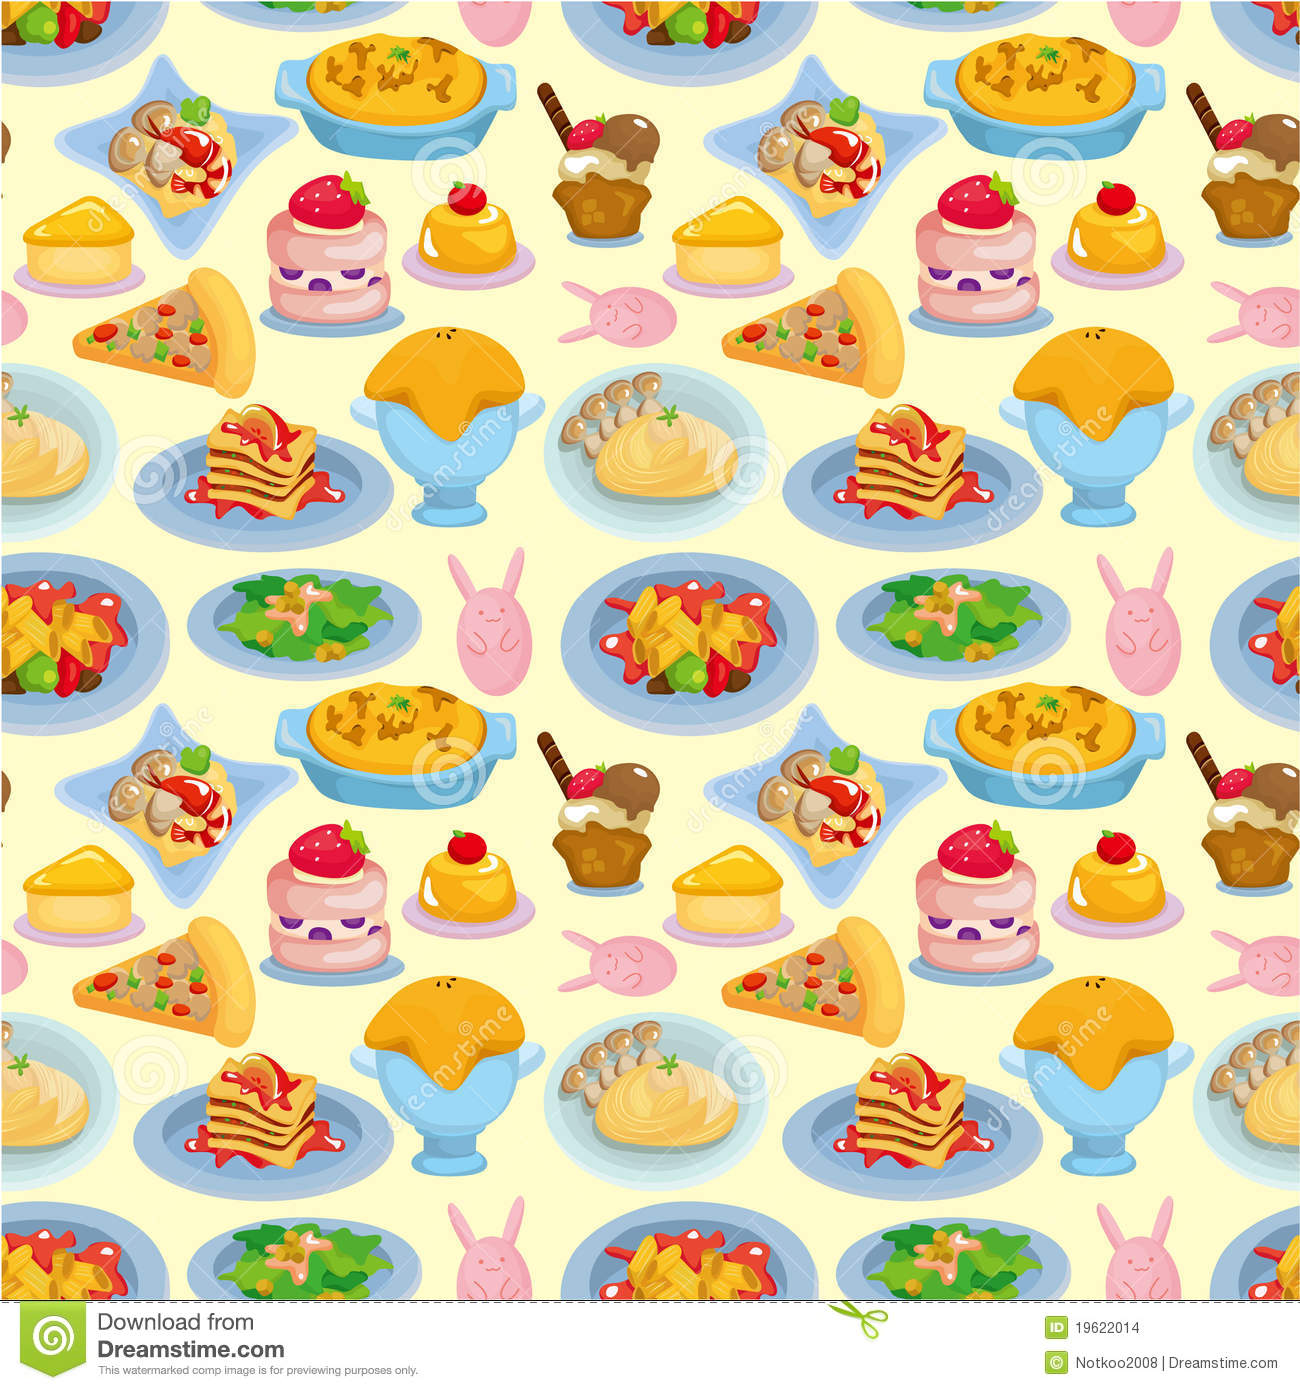 Cartoon Food Wallpaper